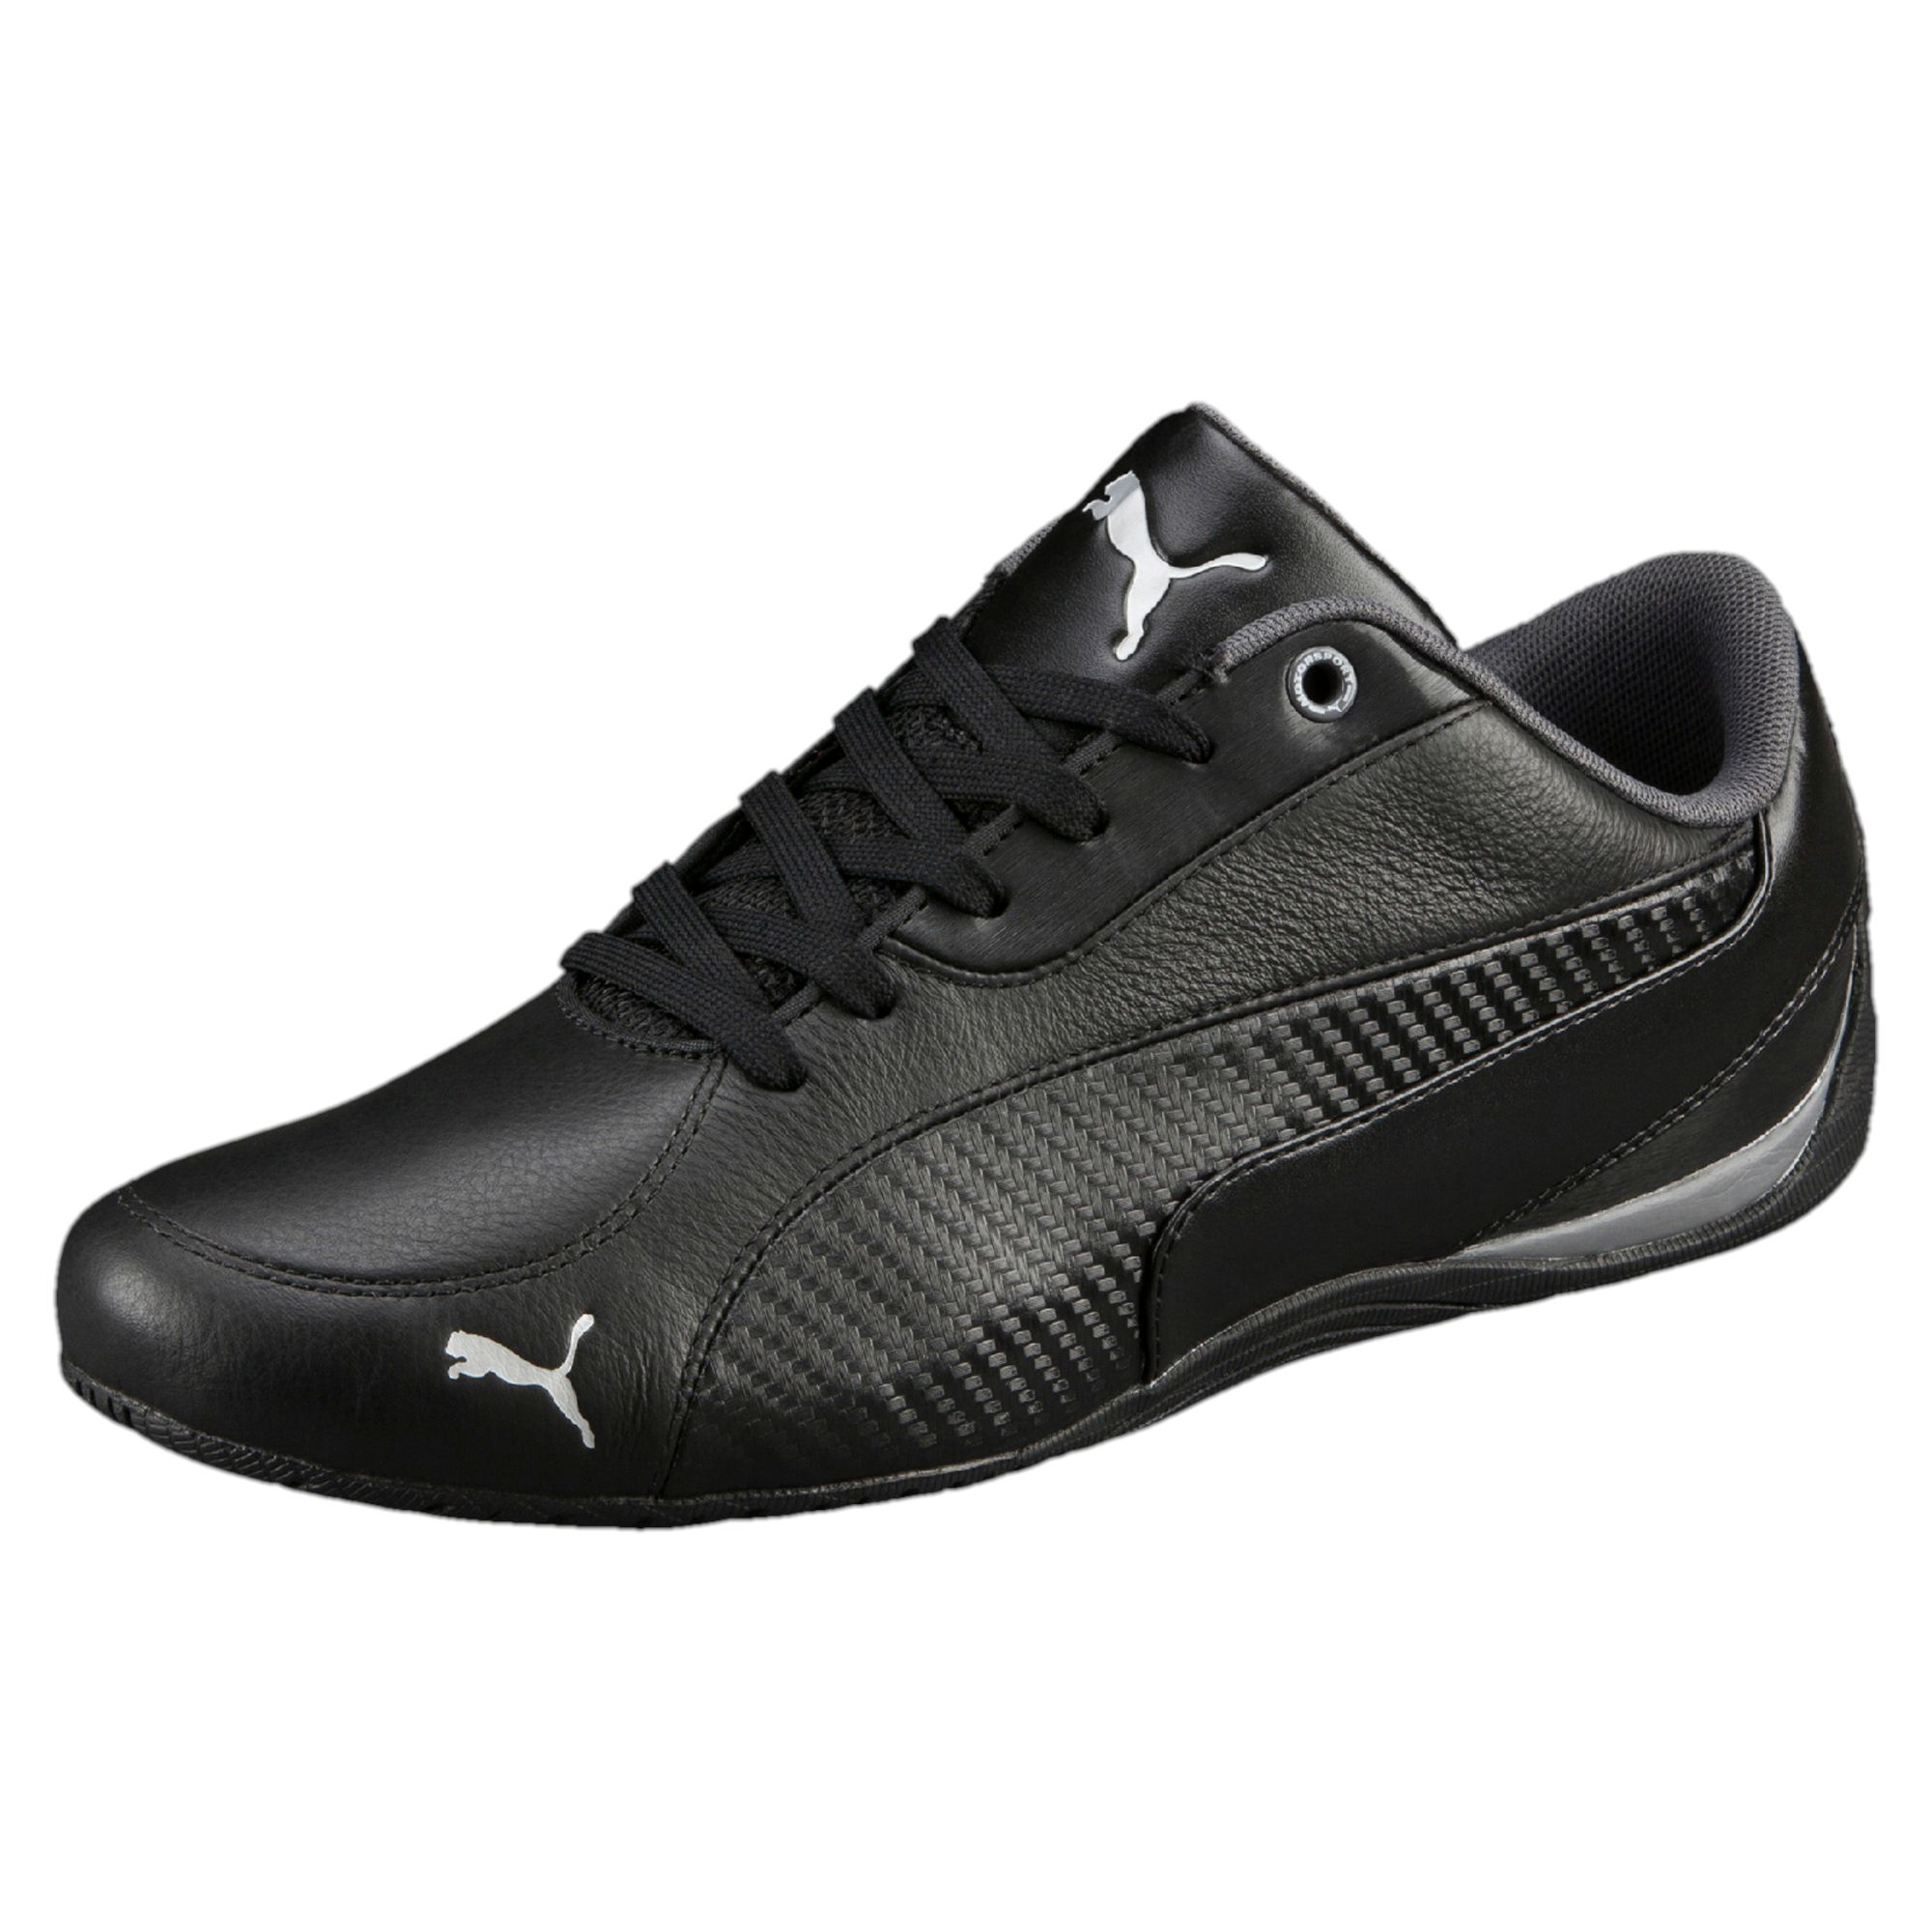 puma drift cat puma-drift-cat-5-carbon-men-039-s- JXFEKFF